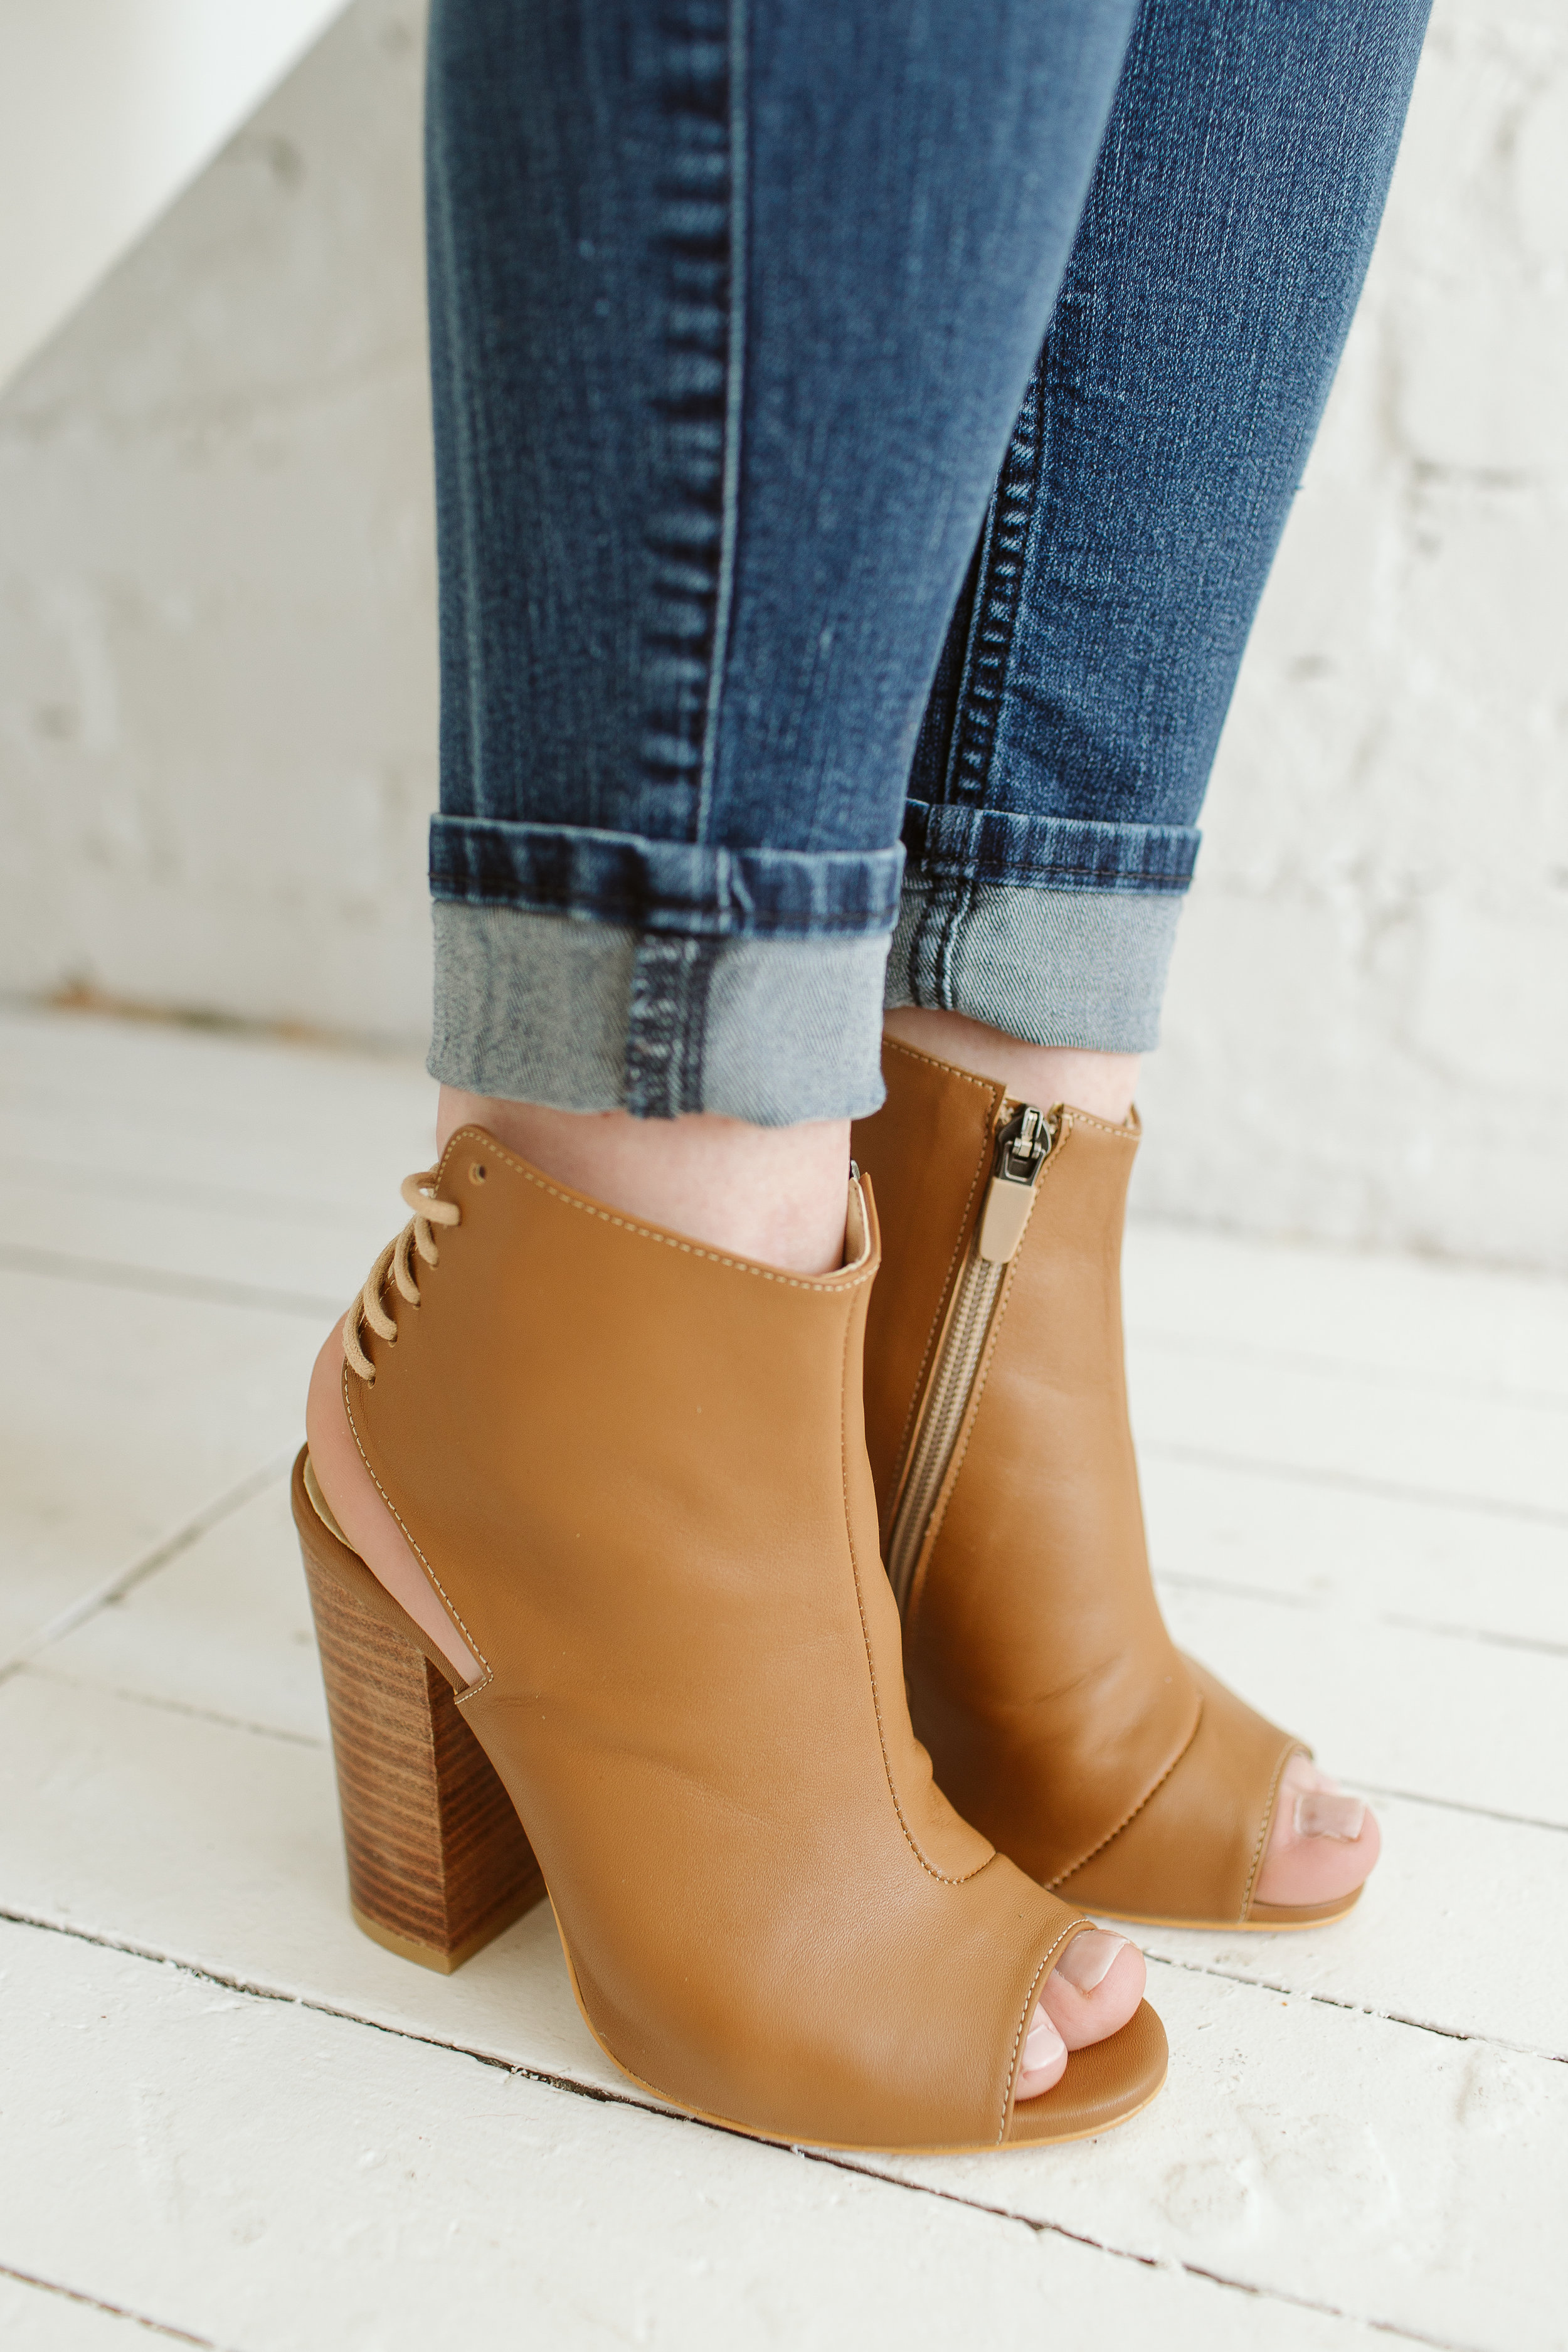 Open Toe Booties, Eshne Petite.  $175. Available at Amazon.